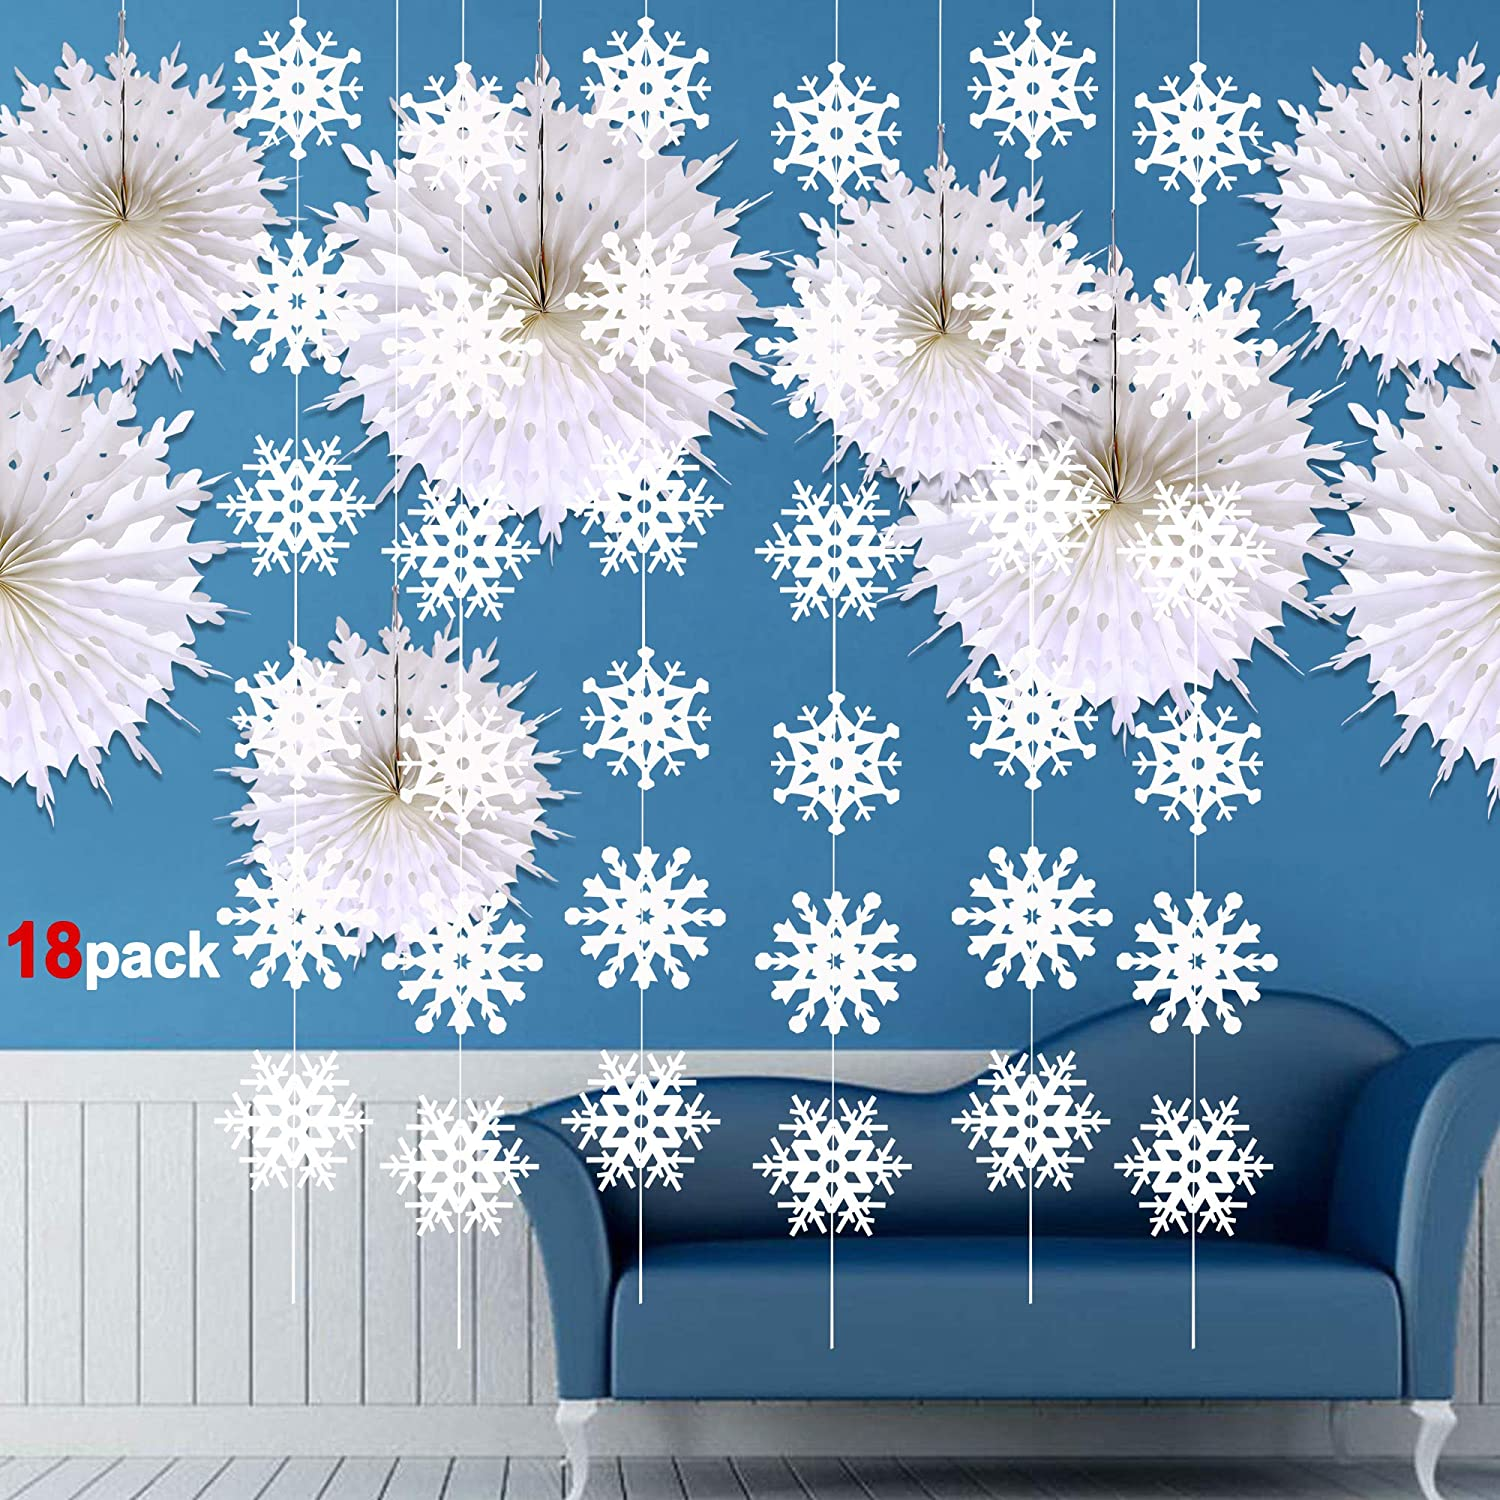 Snowflake Decorations 16pack Konsait Large Christmas Tissue Paper Fans Snowflake Hanging Garland Banner Decor Xmas Ornament Accessories For Home